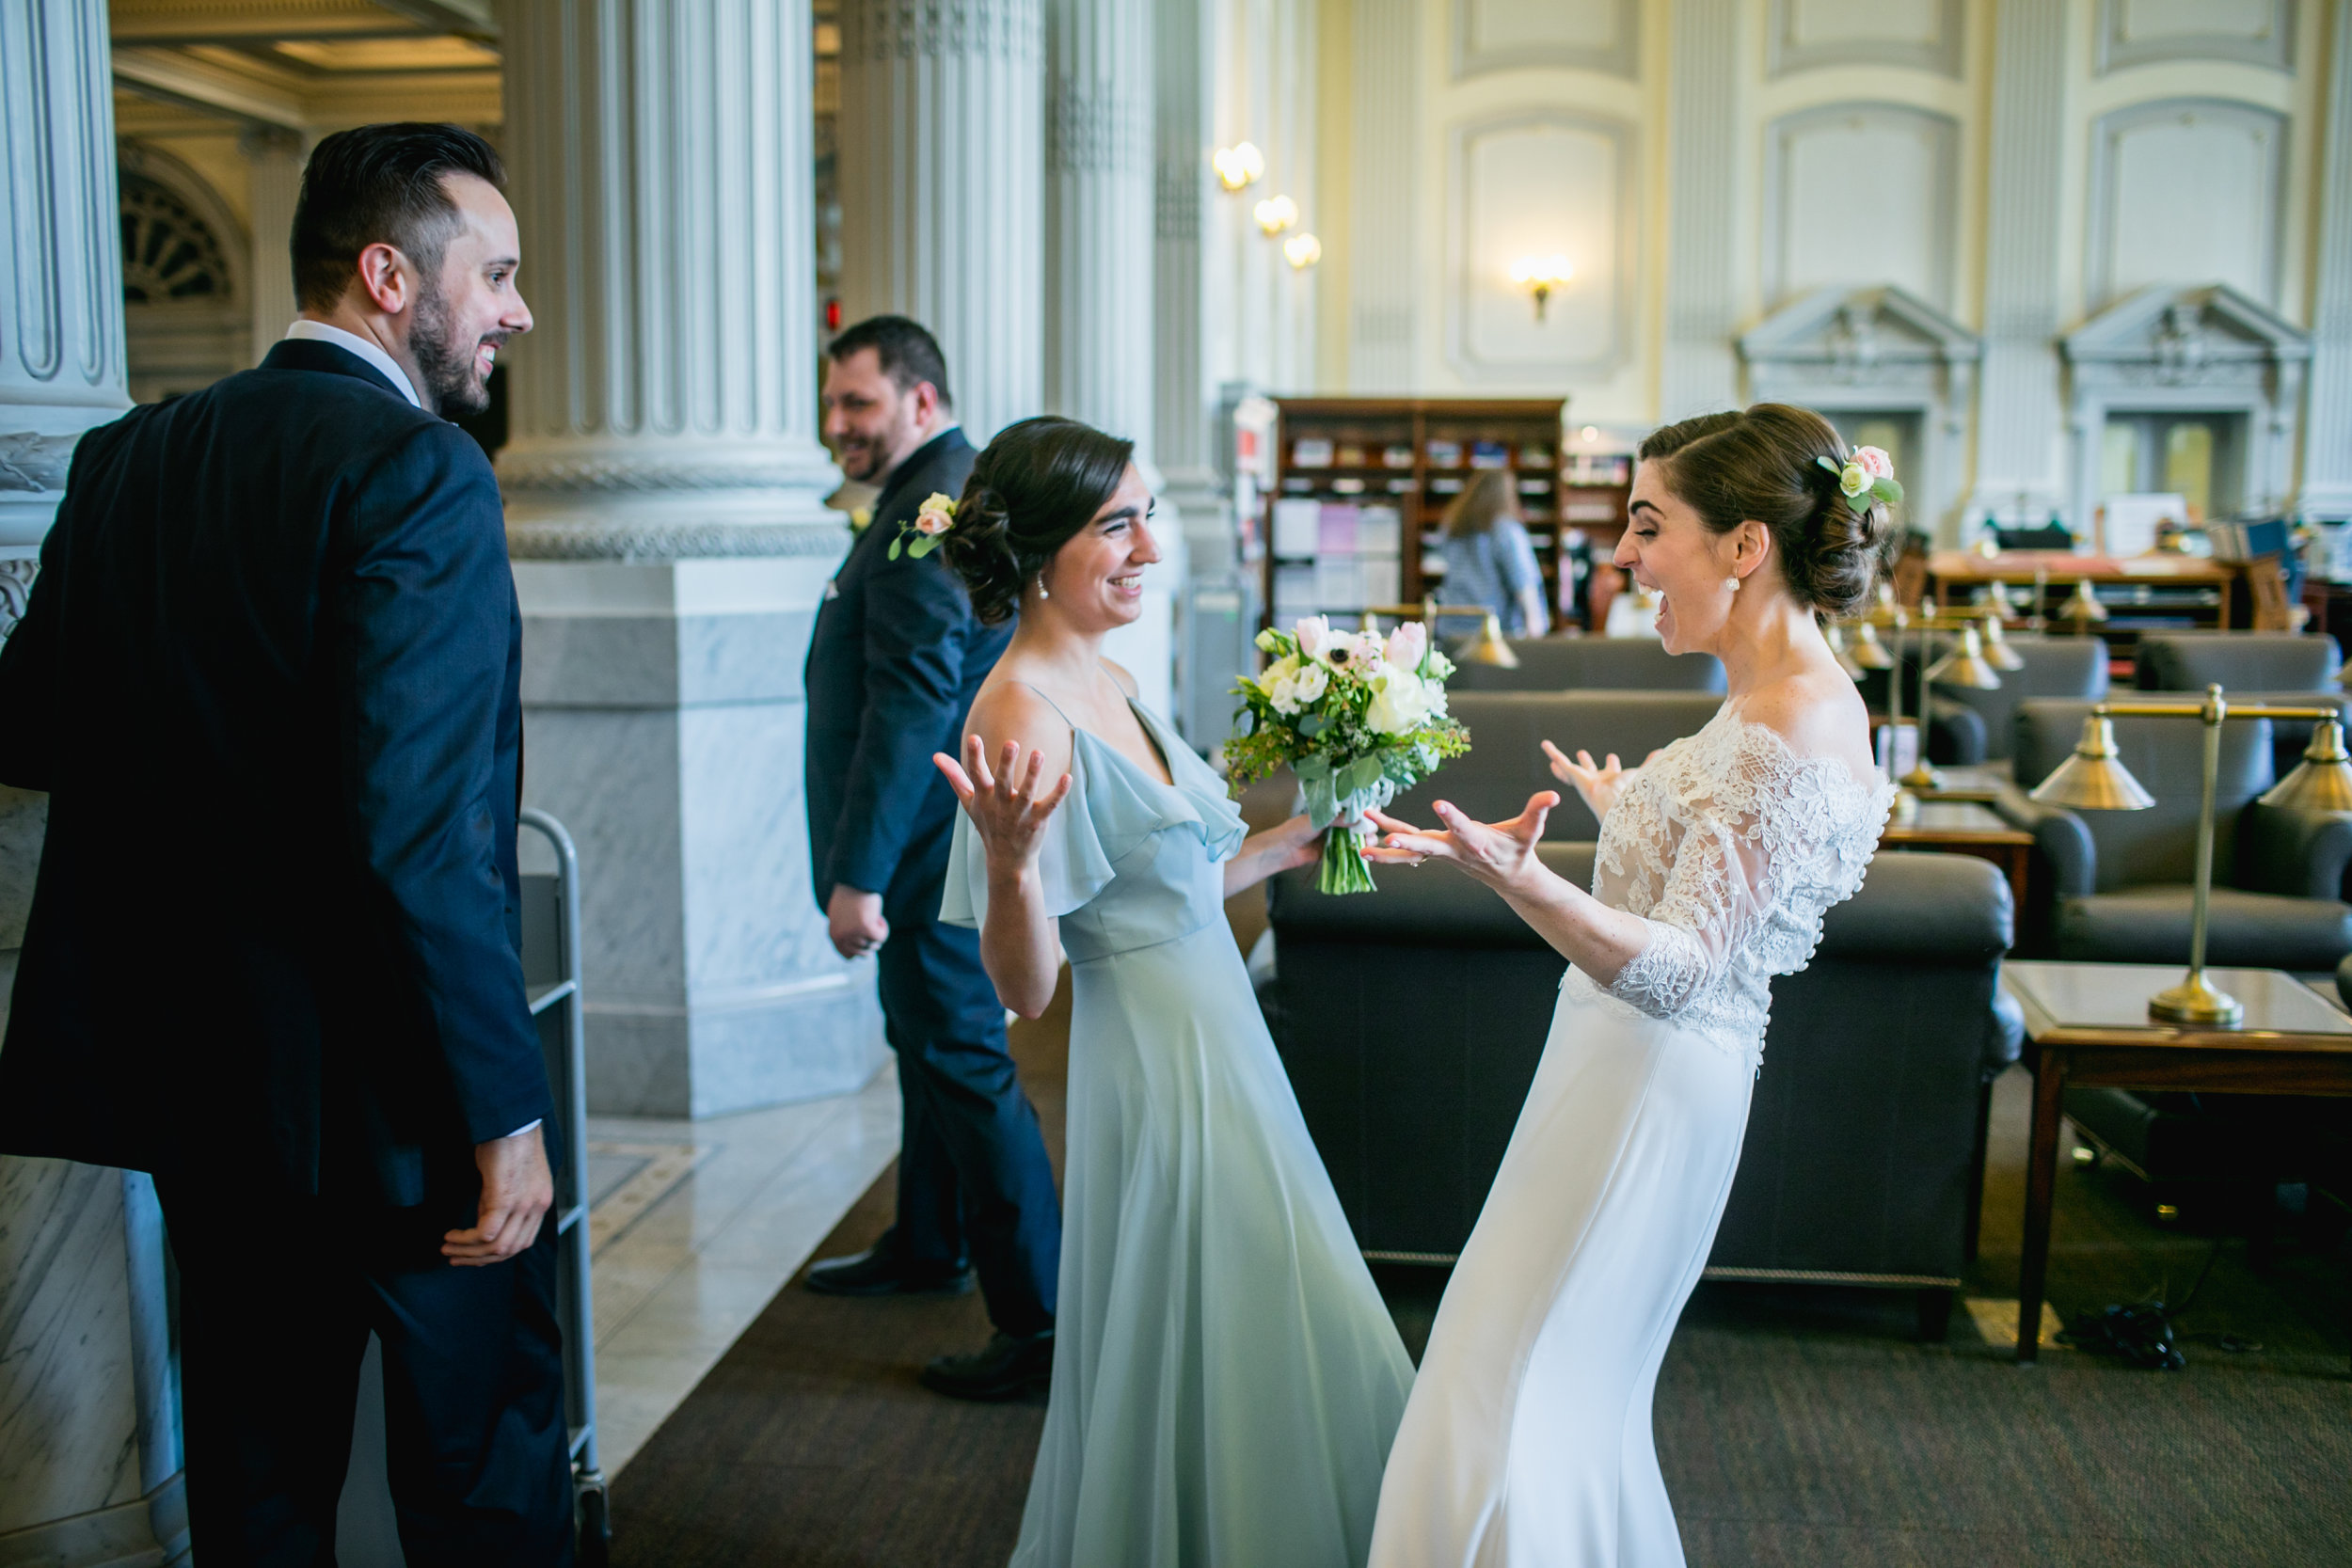 institutes-for-discovery-wedding011.jpg